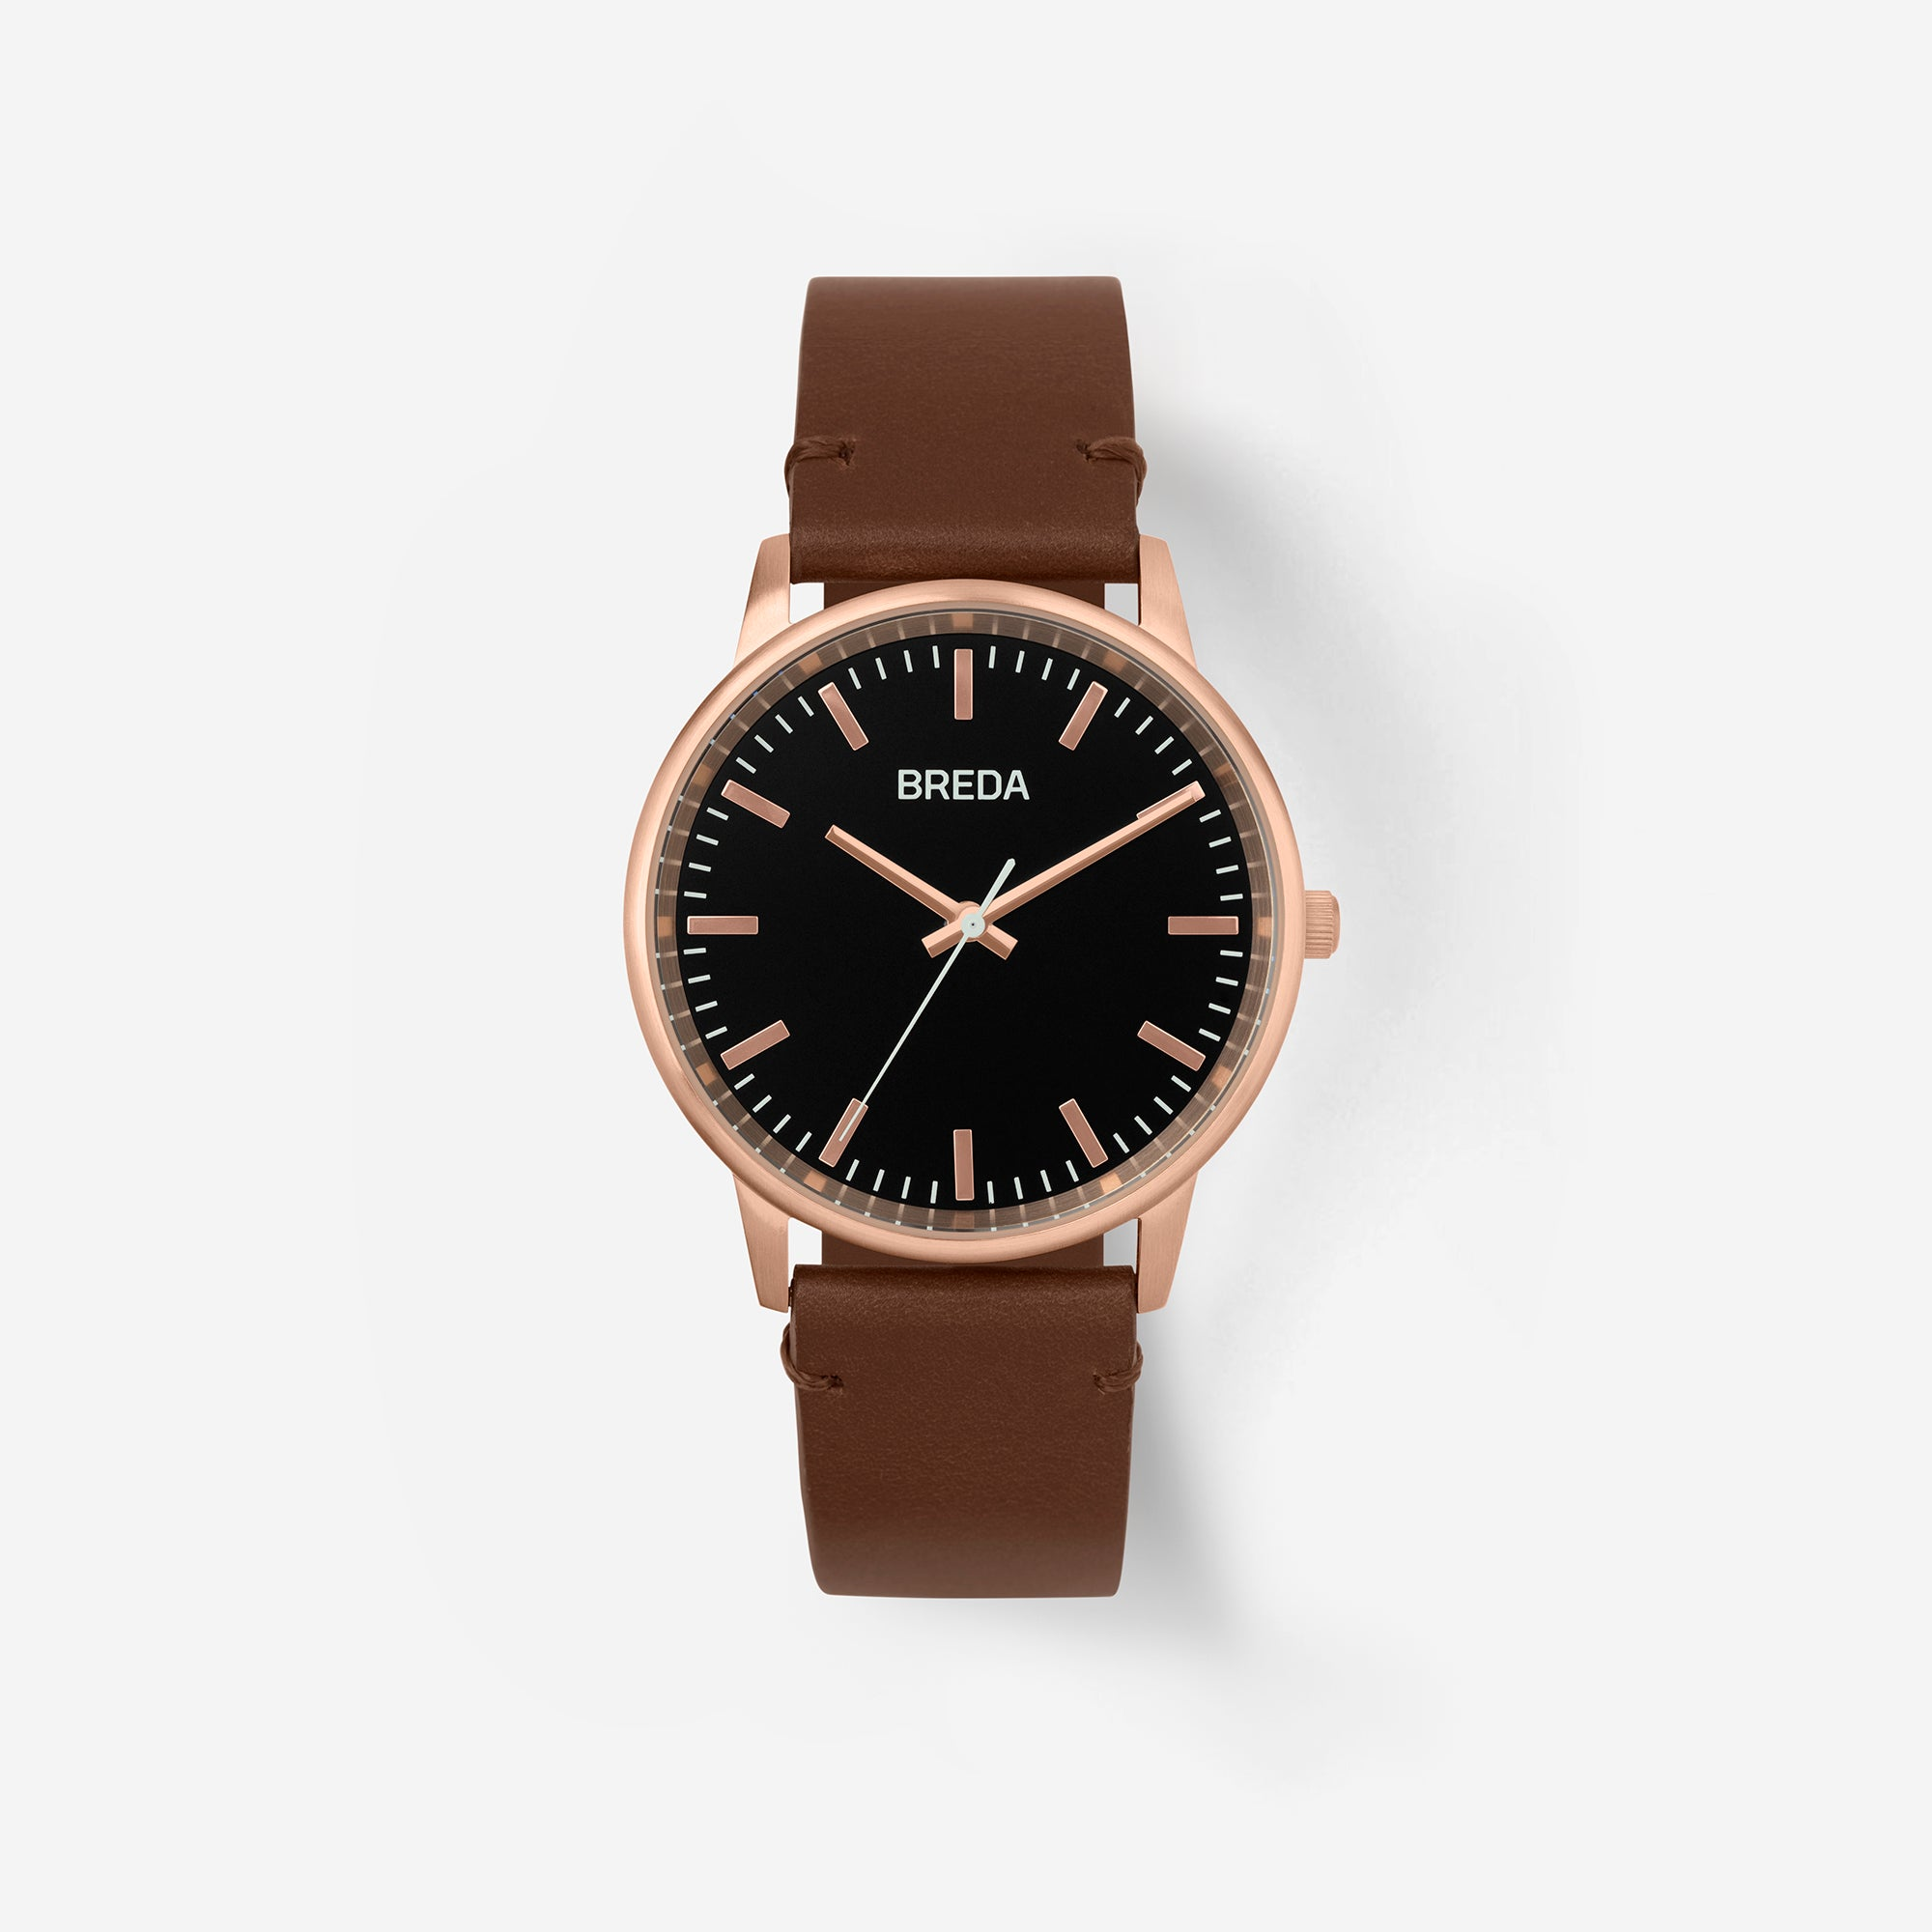 //cdn.shopify.com/s/files/1/0879/6650/products/breda-zapf-1697n-rose-gold-brown-leather-watch-front_1024x1024.jpg?v=1543248246